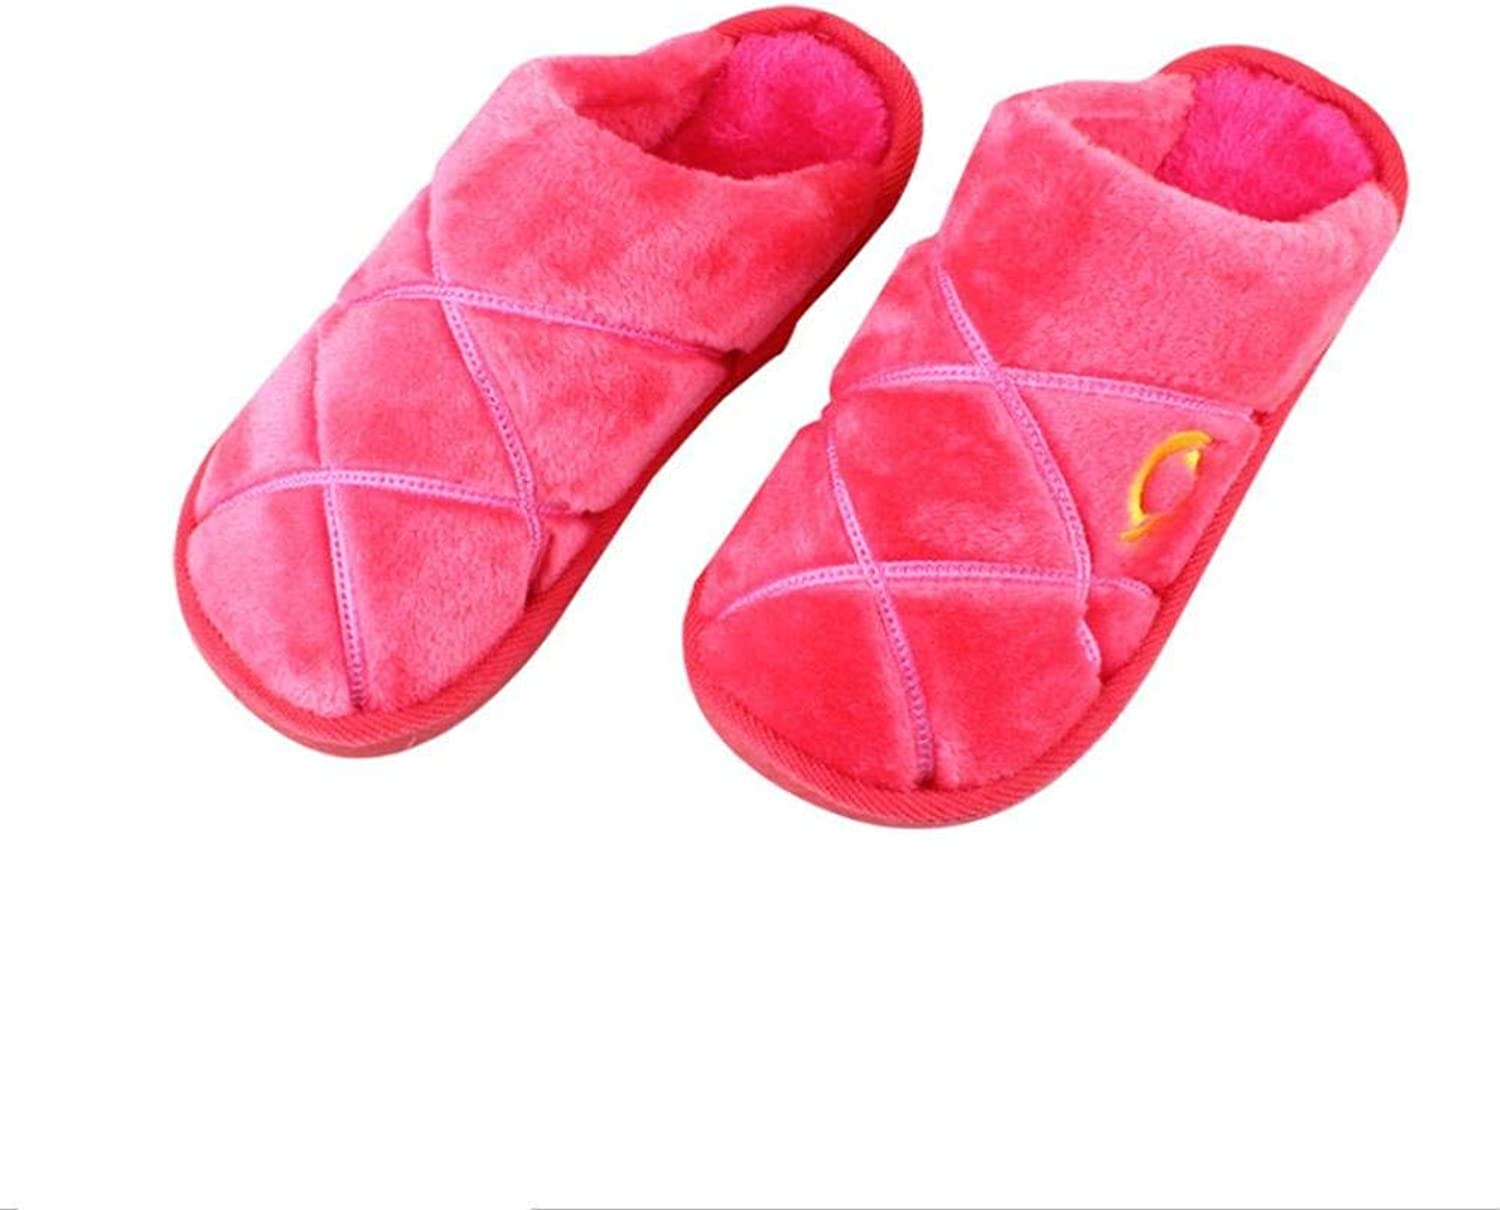 Lady Slippers Ladies Warm Fall and Winter Leisure Cotton Slippers Home Slippers Purple Pink Red for Women Small Large